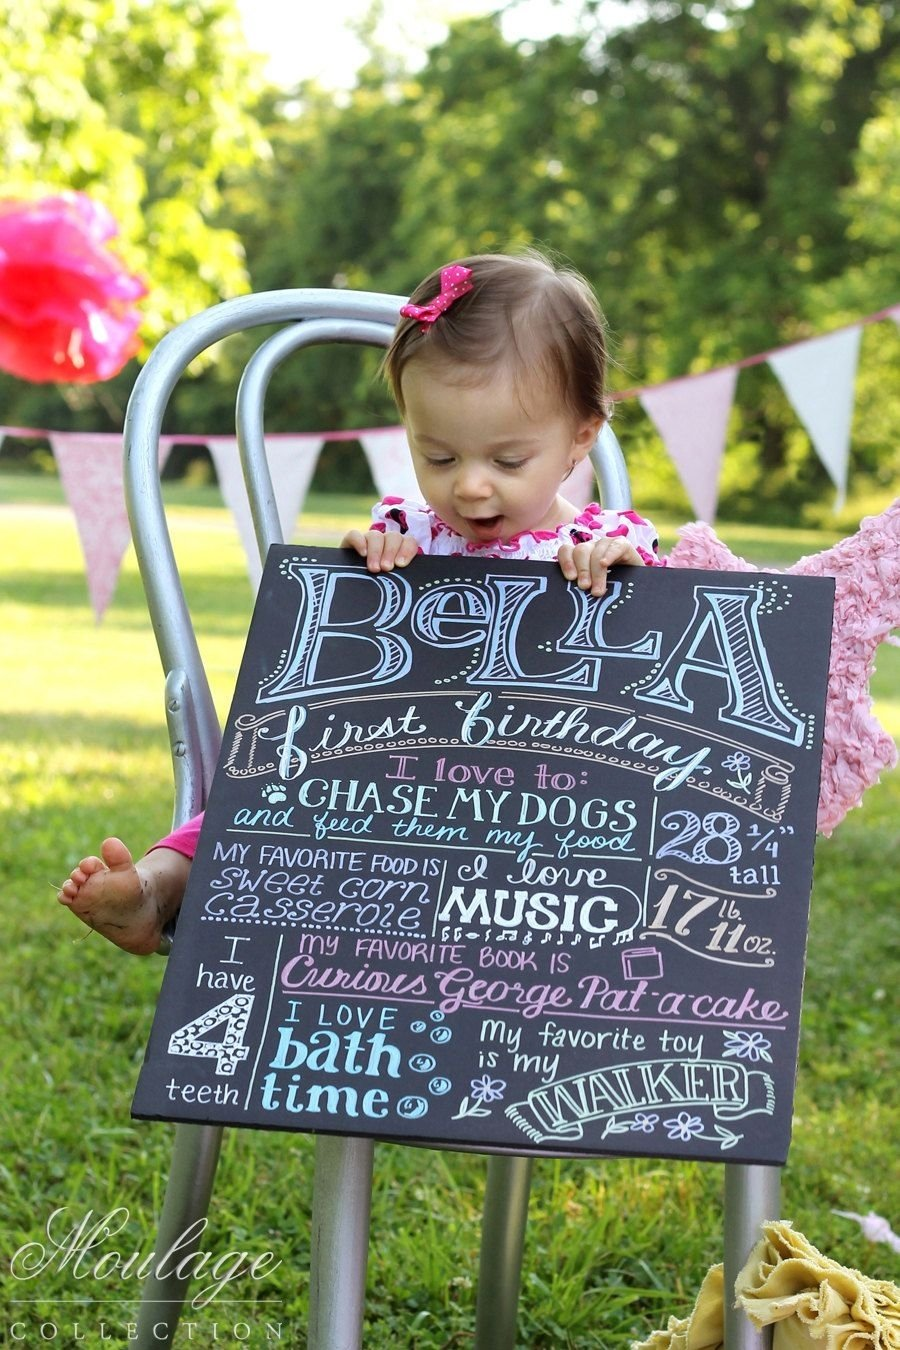 10 Fabulous 1St Birthday Photo Shoot Ideas first birthday poster 32 00 via etsy way in the future cute 2020